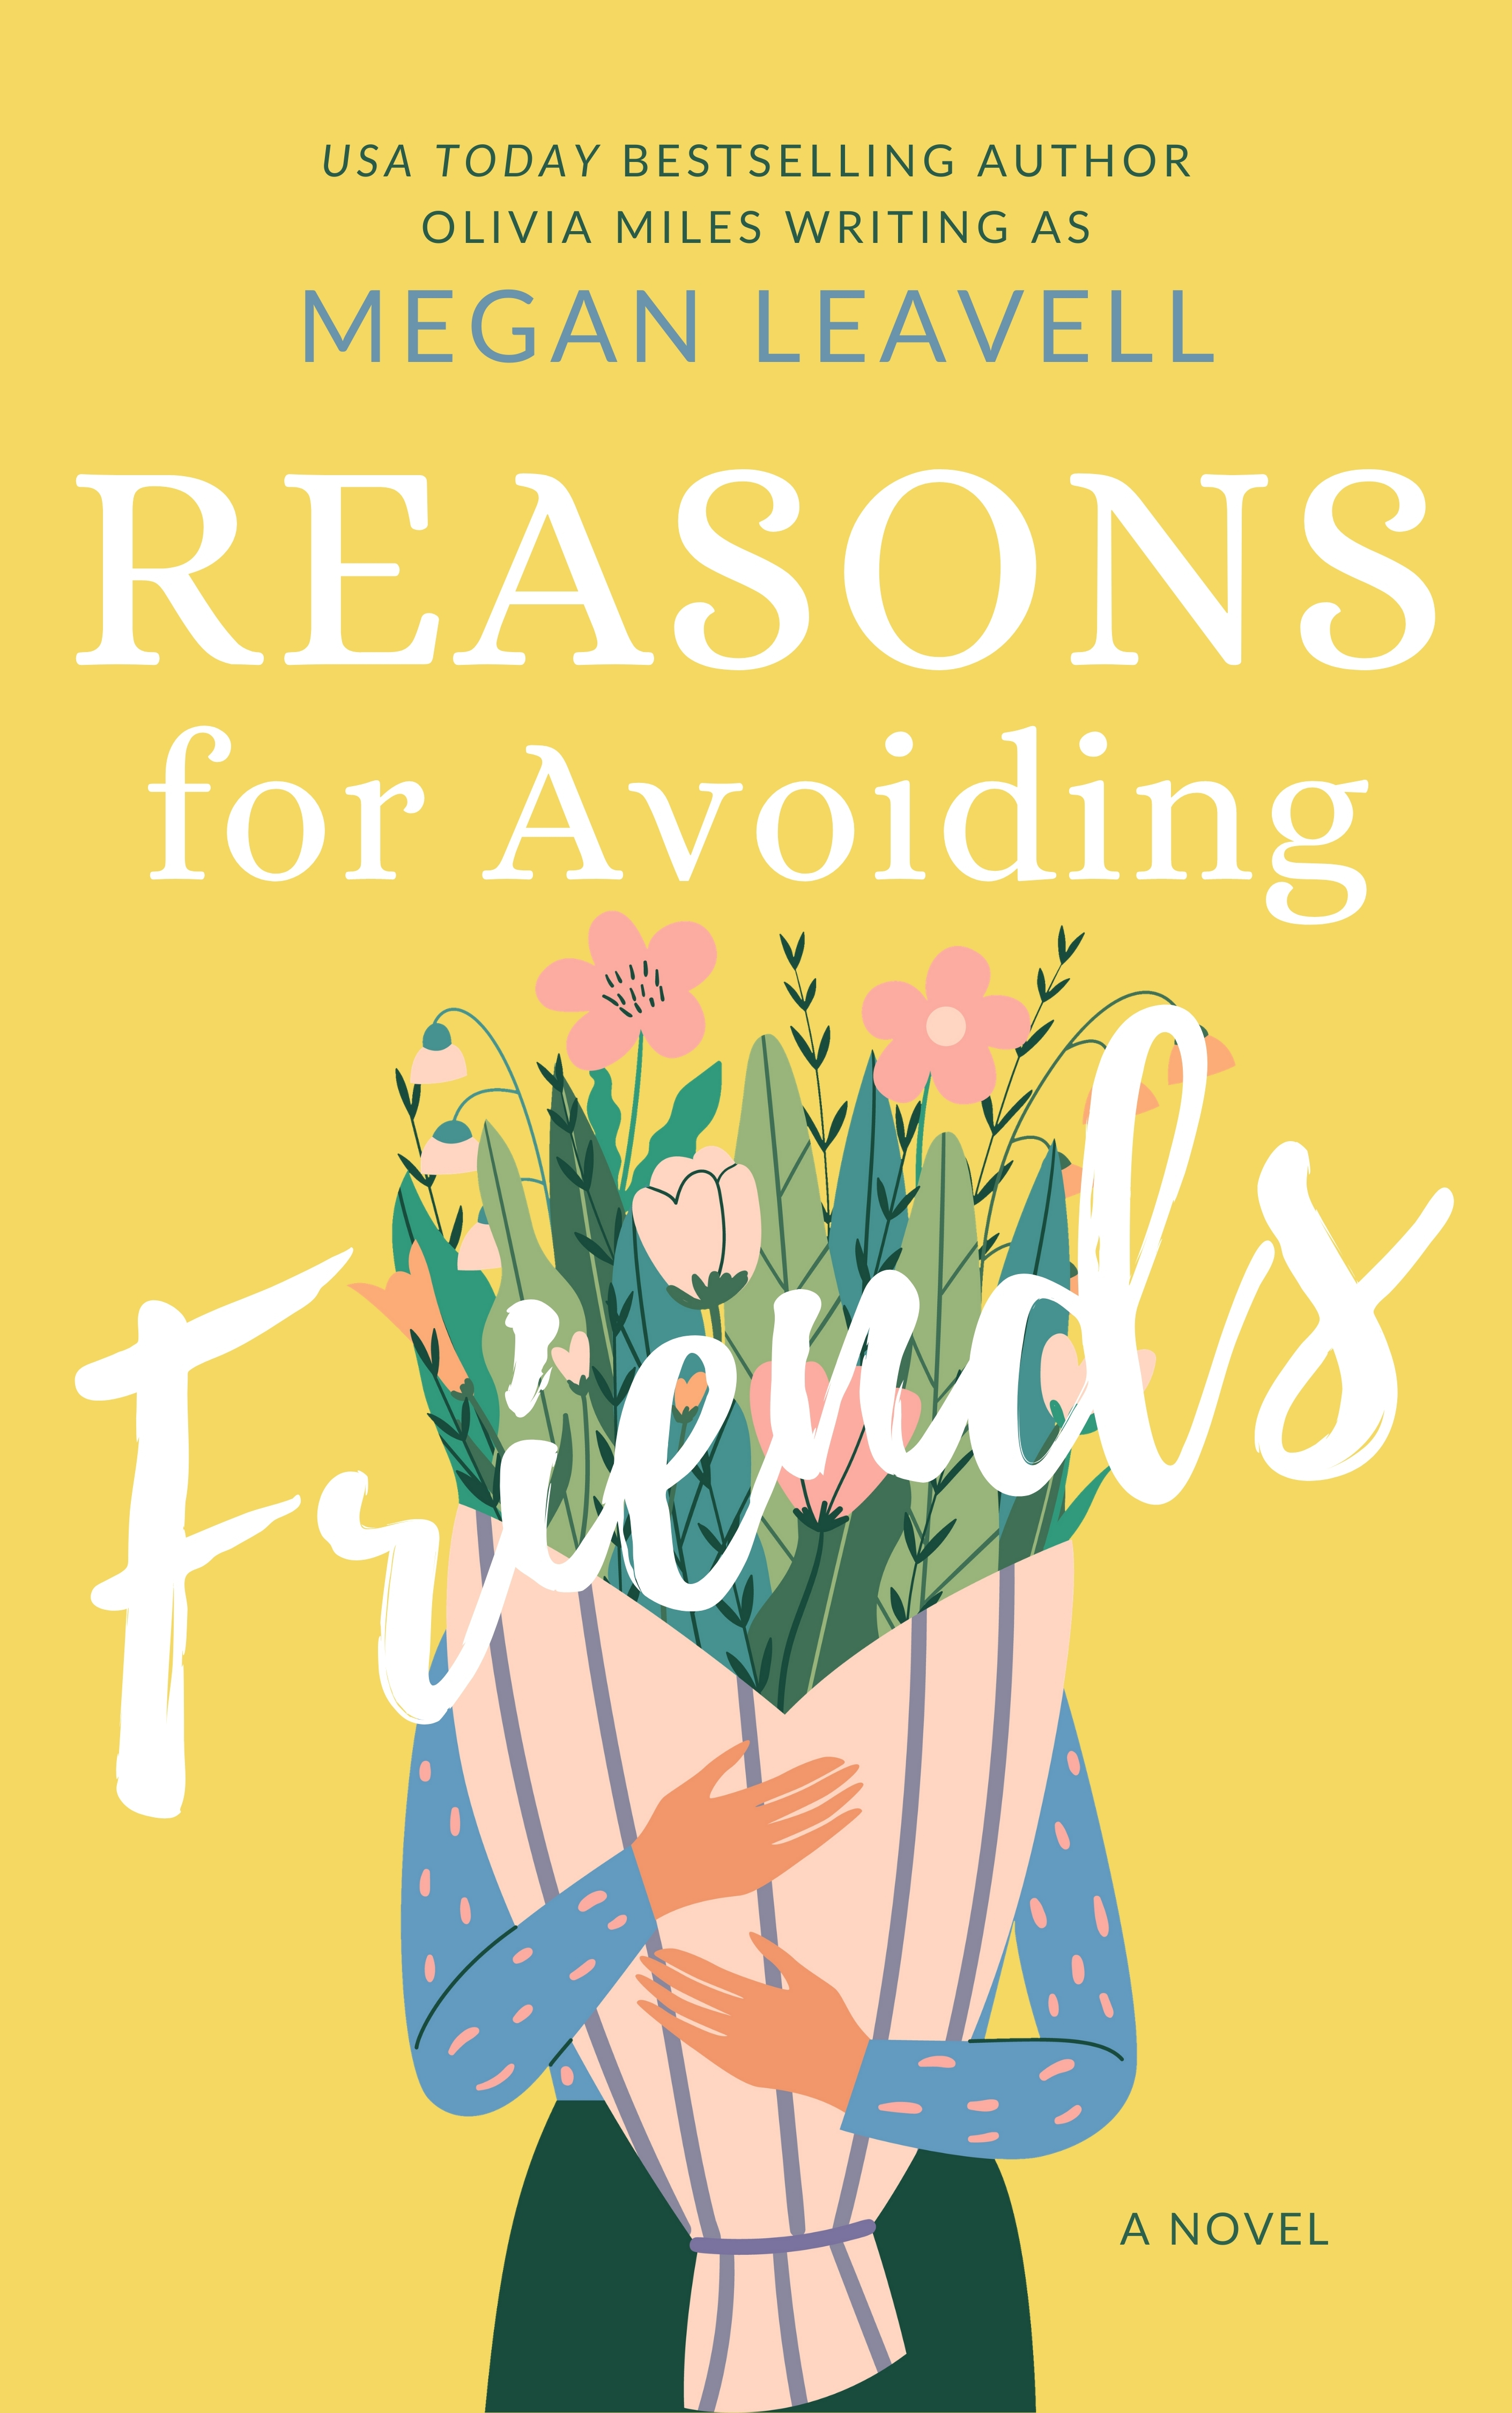 Reasons for avoiding Friends book cover with woman holding large flower bouquet